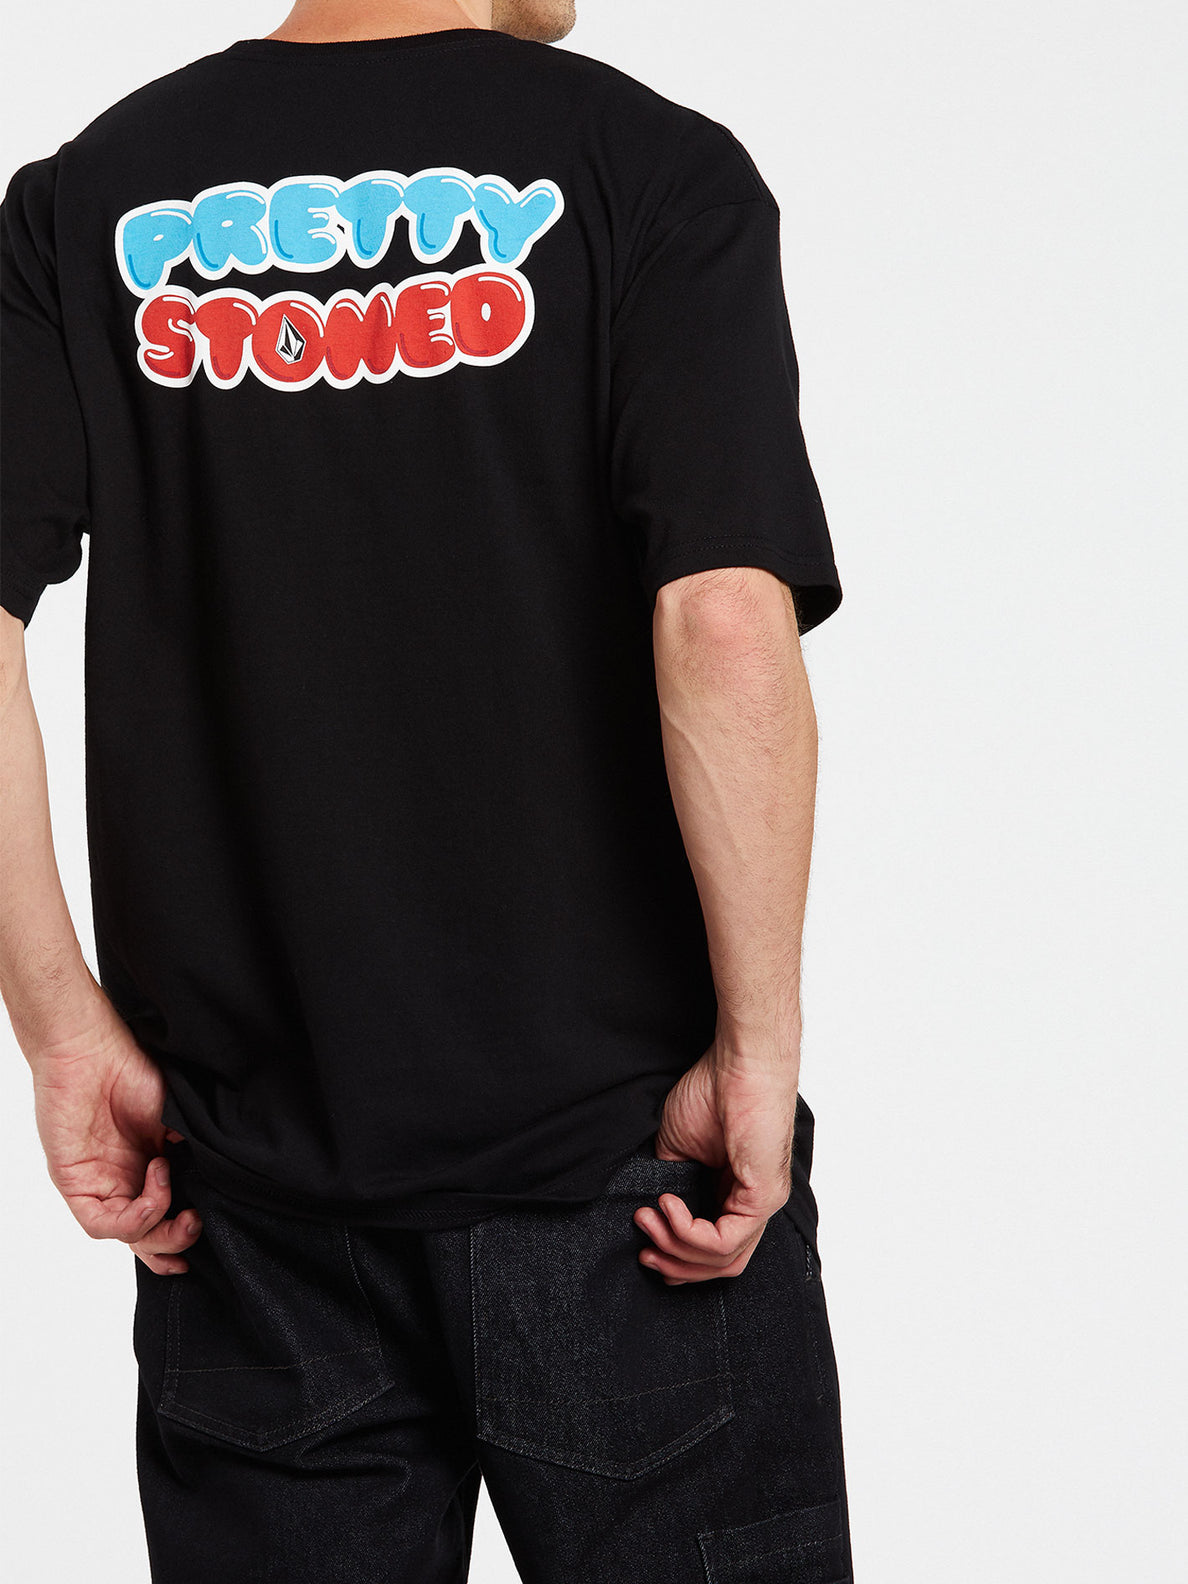 Pretty Stoned Short Sleeve Tee - Black (A3532009_BLK) [05]